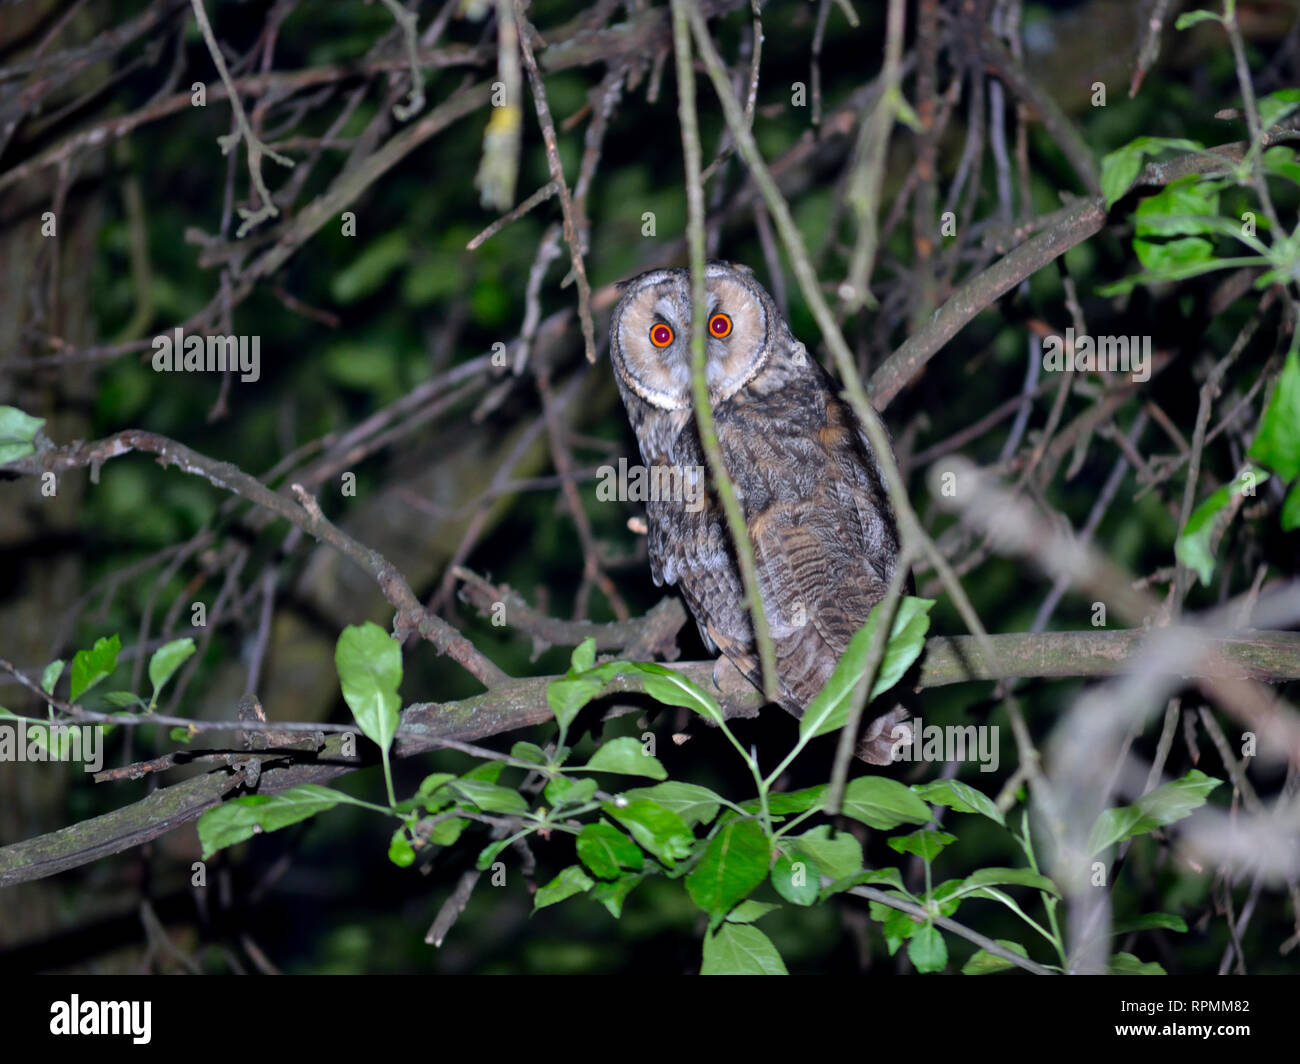 Long-eared owl hiding in the branches of a tree - Stock Image